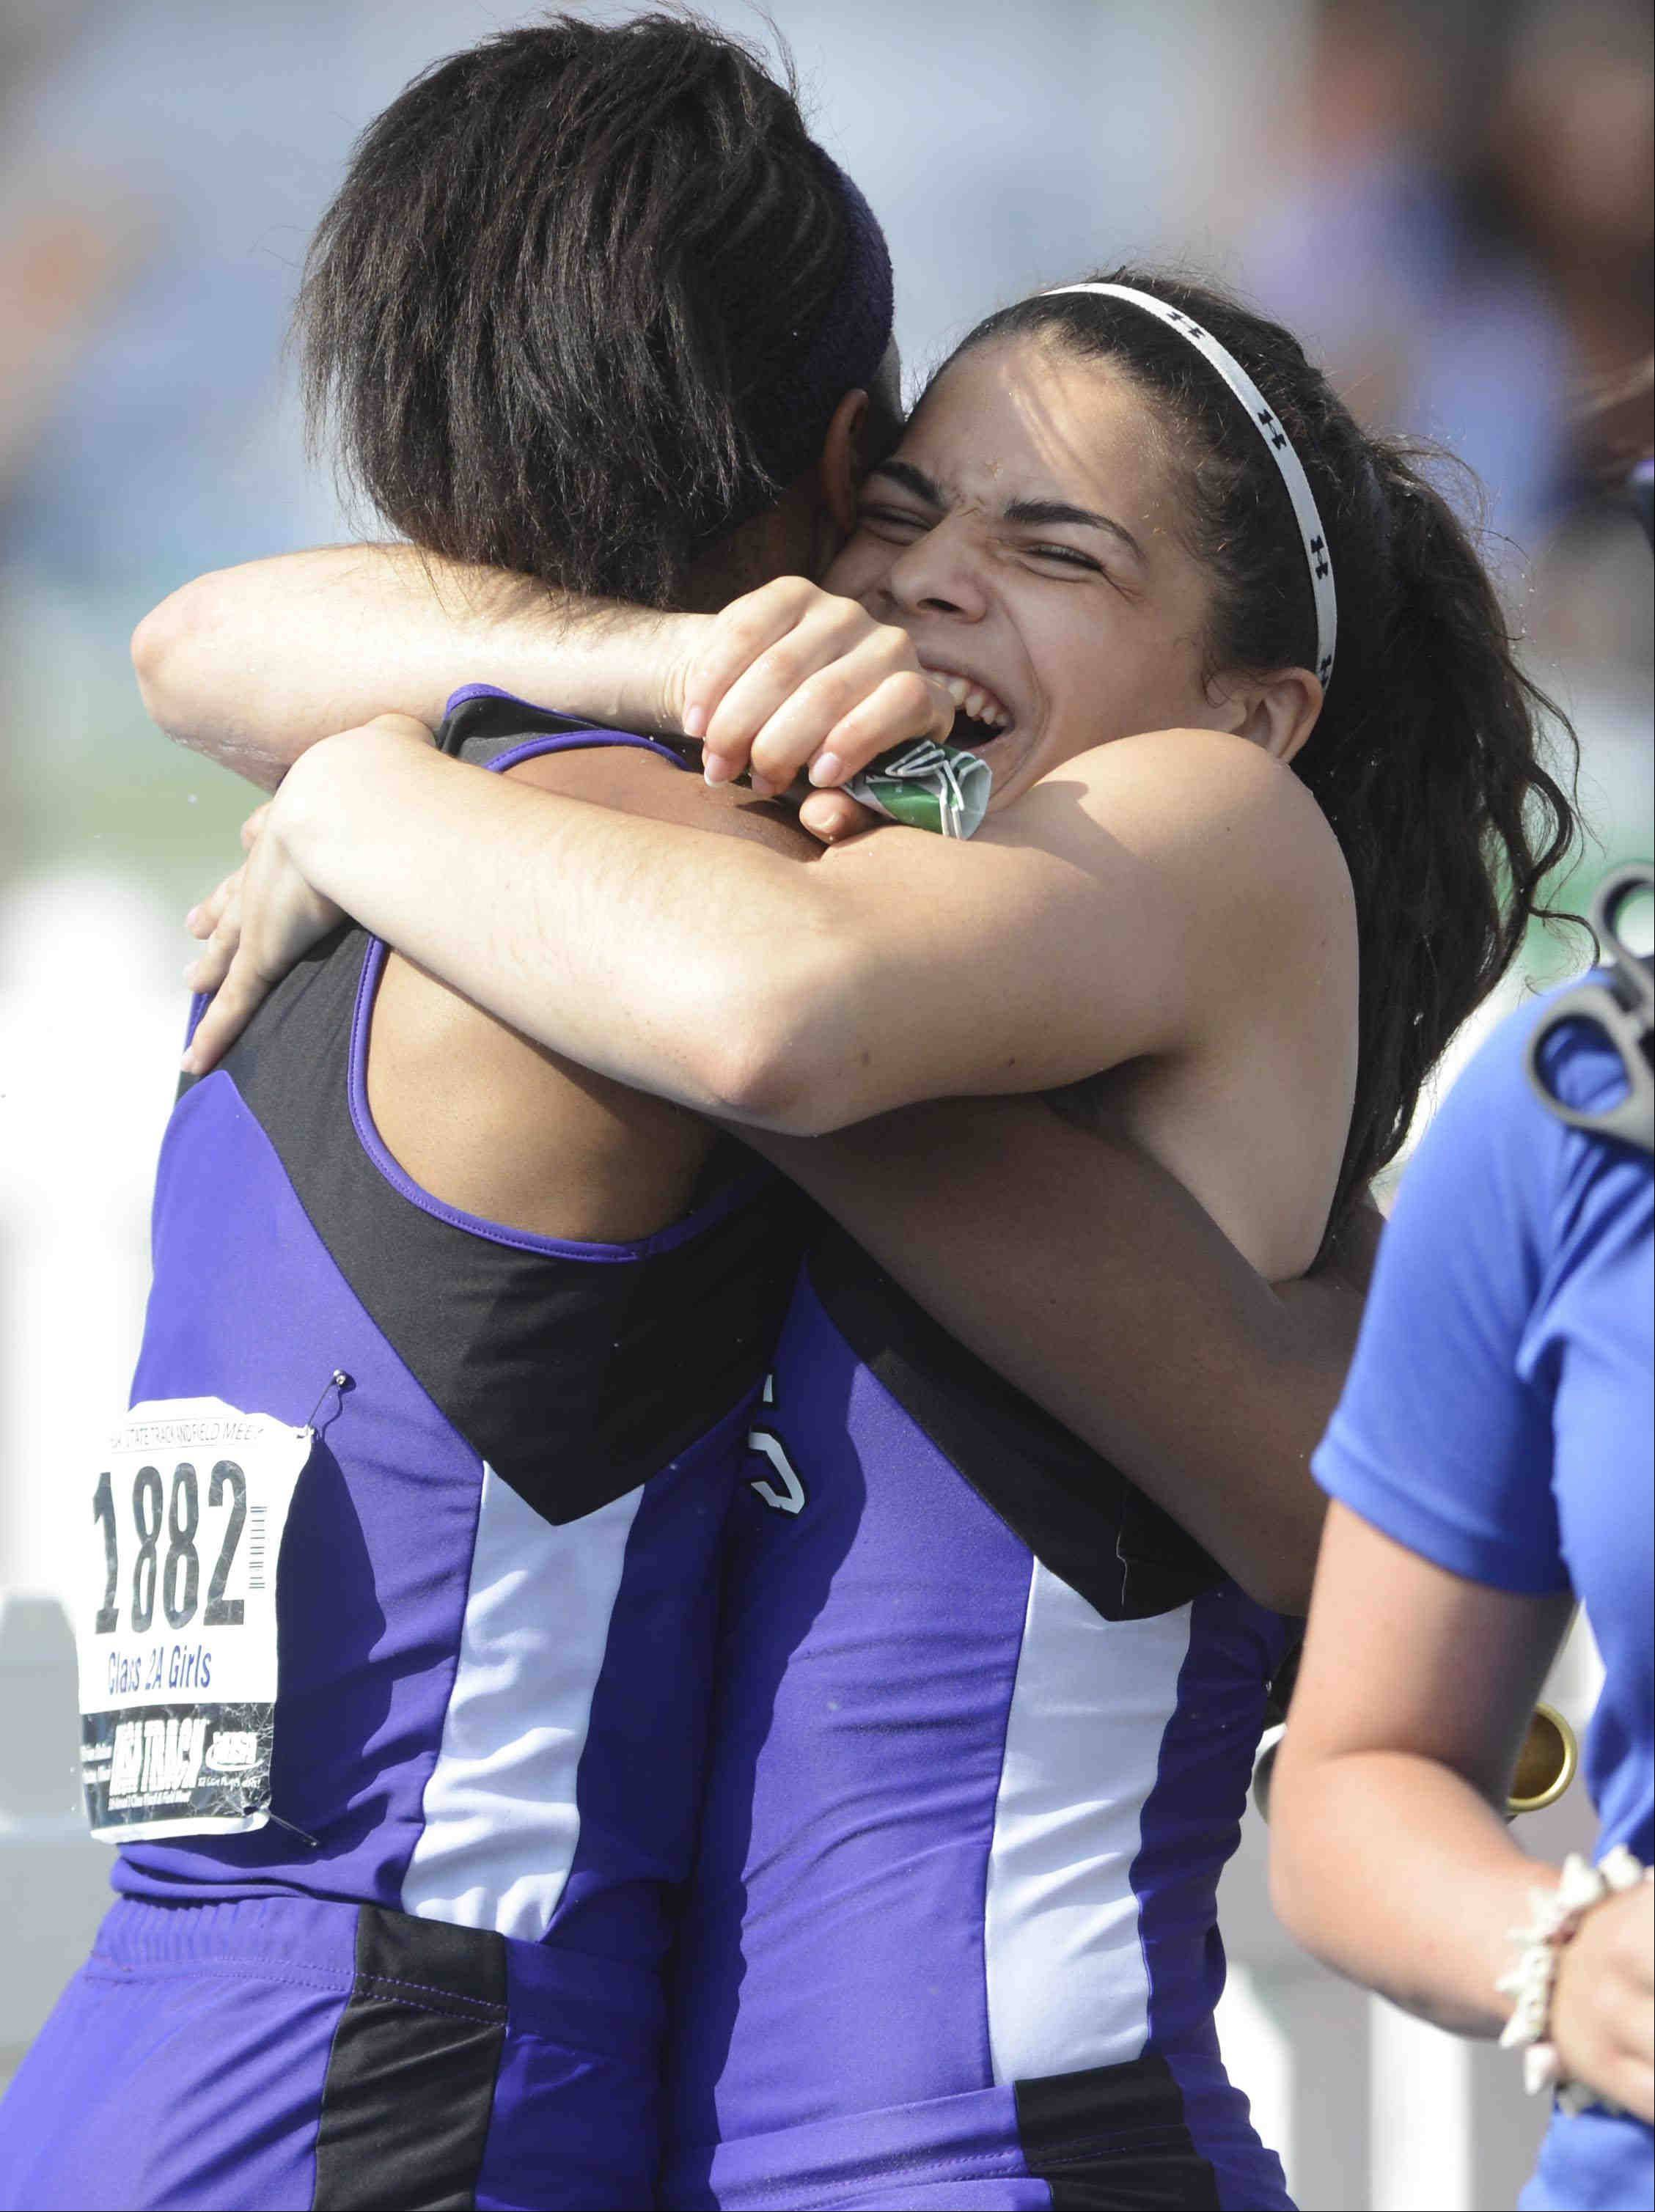 Hampshire's Elizabeth Pagan hugs teammate Ashley Fouch after their third place finish in the 1,600 meter relay Saturday at the Class 2A girls state track and field finals at O'Brien Stadium at Eastern Illinois University in Charleston.